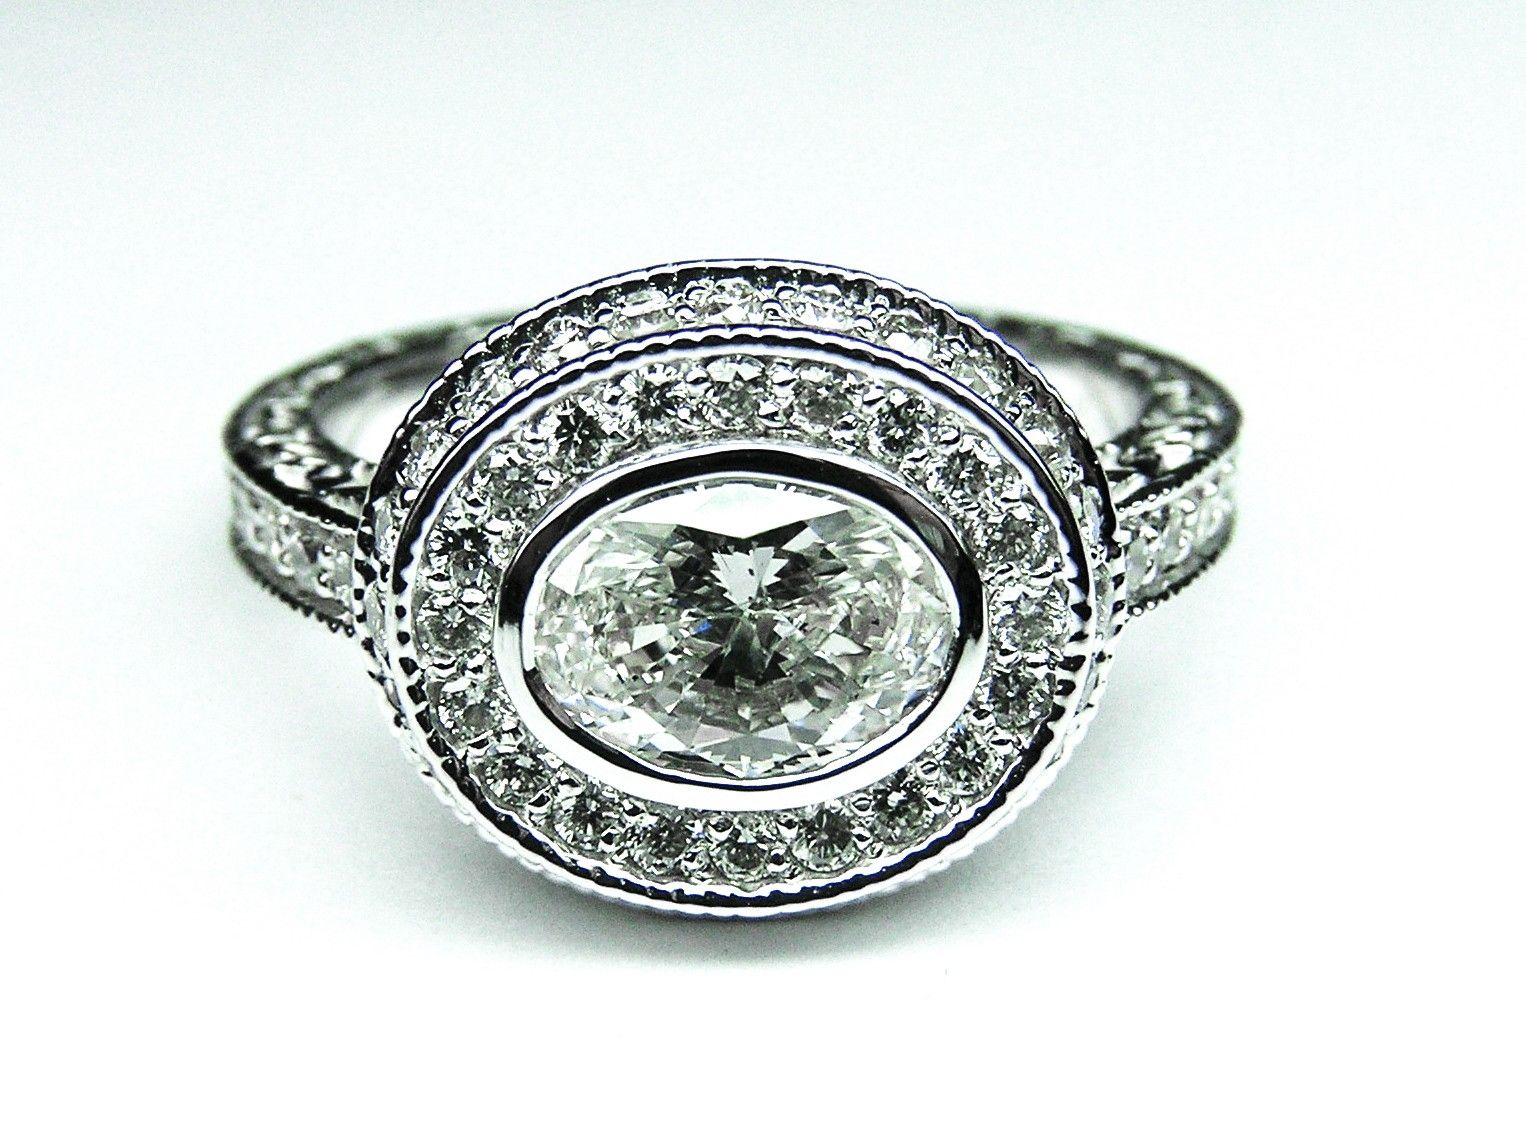 Custom Made Horizontal Oval Diamond Engagement Ring Bezel Set With Halo And  Engraved Band In 14k